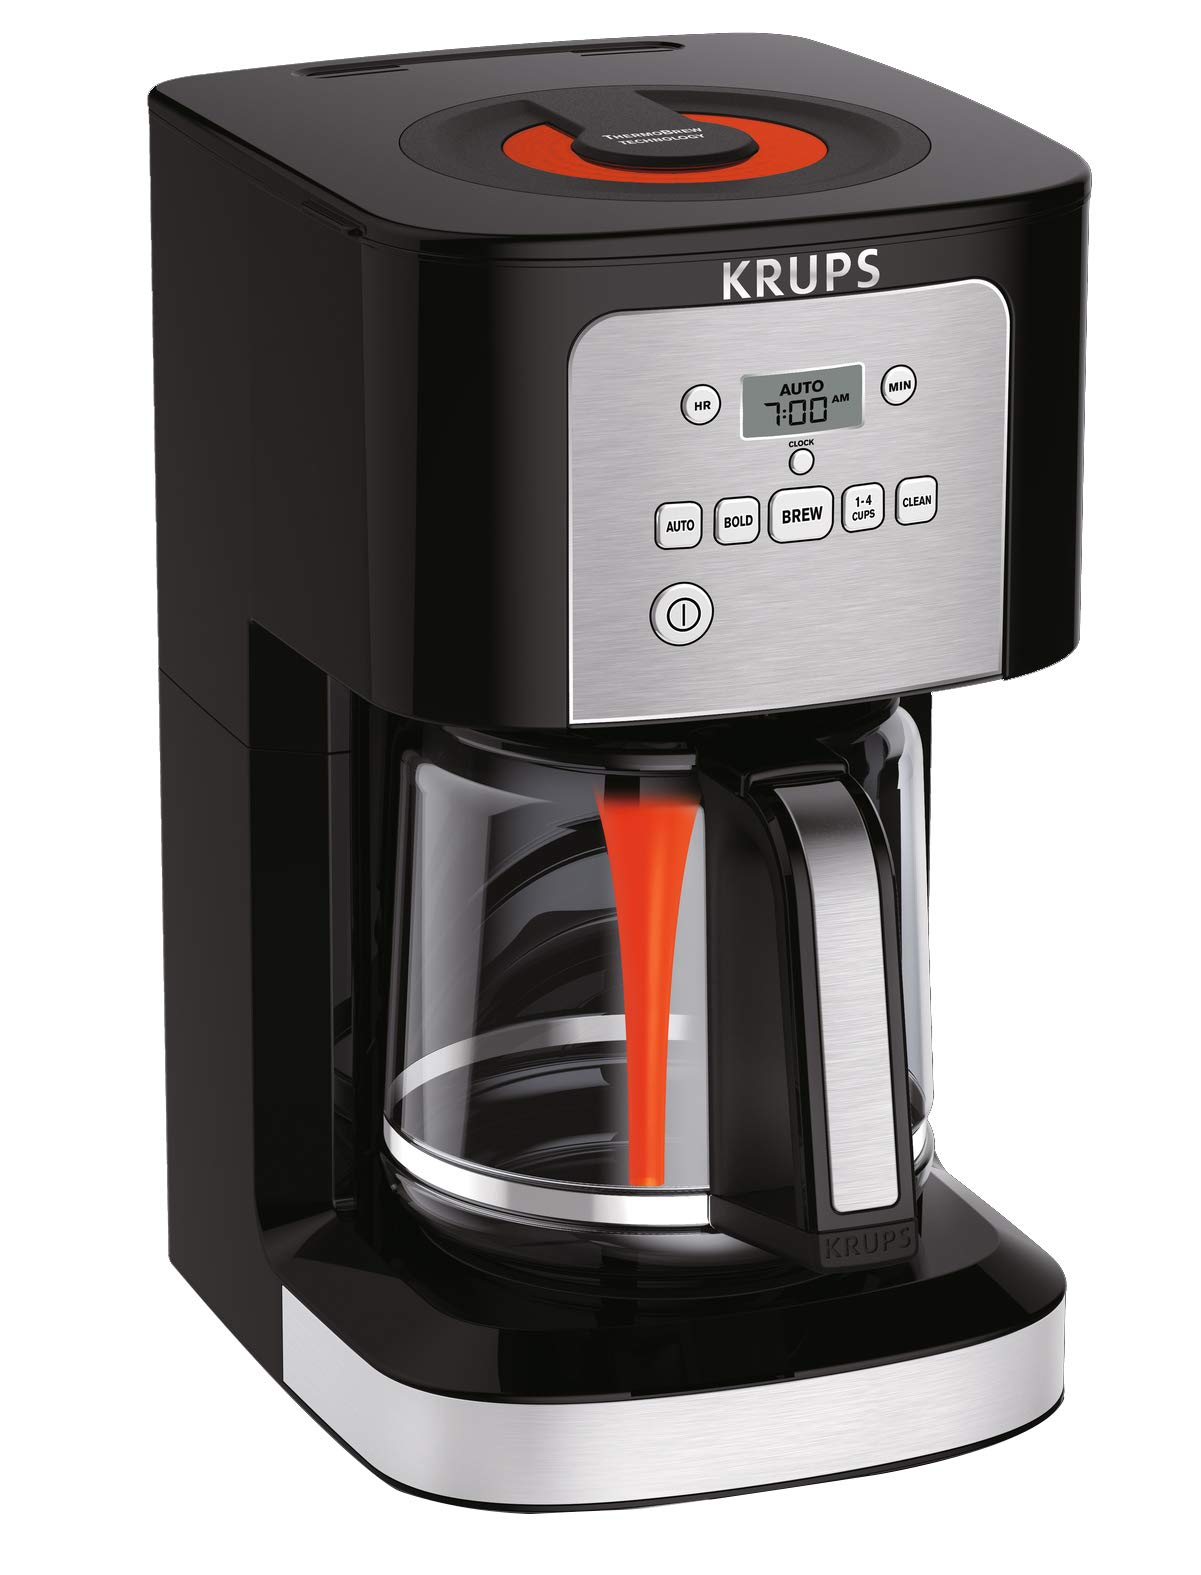 KRUPS EC321 Coffee Machine, 12-Cup Programmable Coffee Maker, Professional Permanent Gold-Tone, Thermobrew Technology, Black